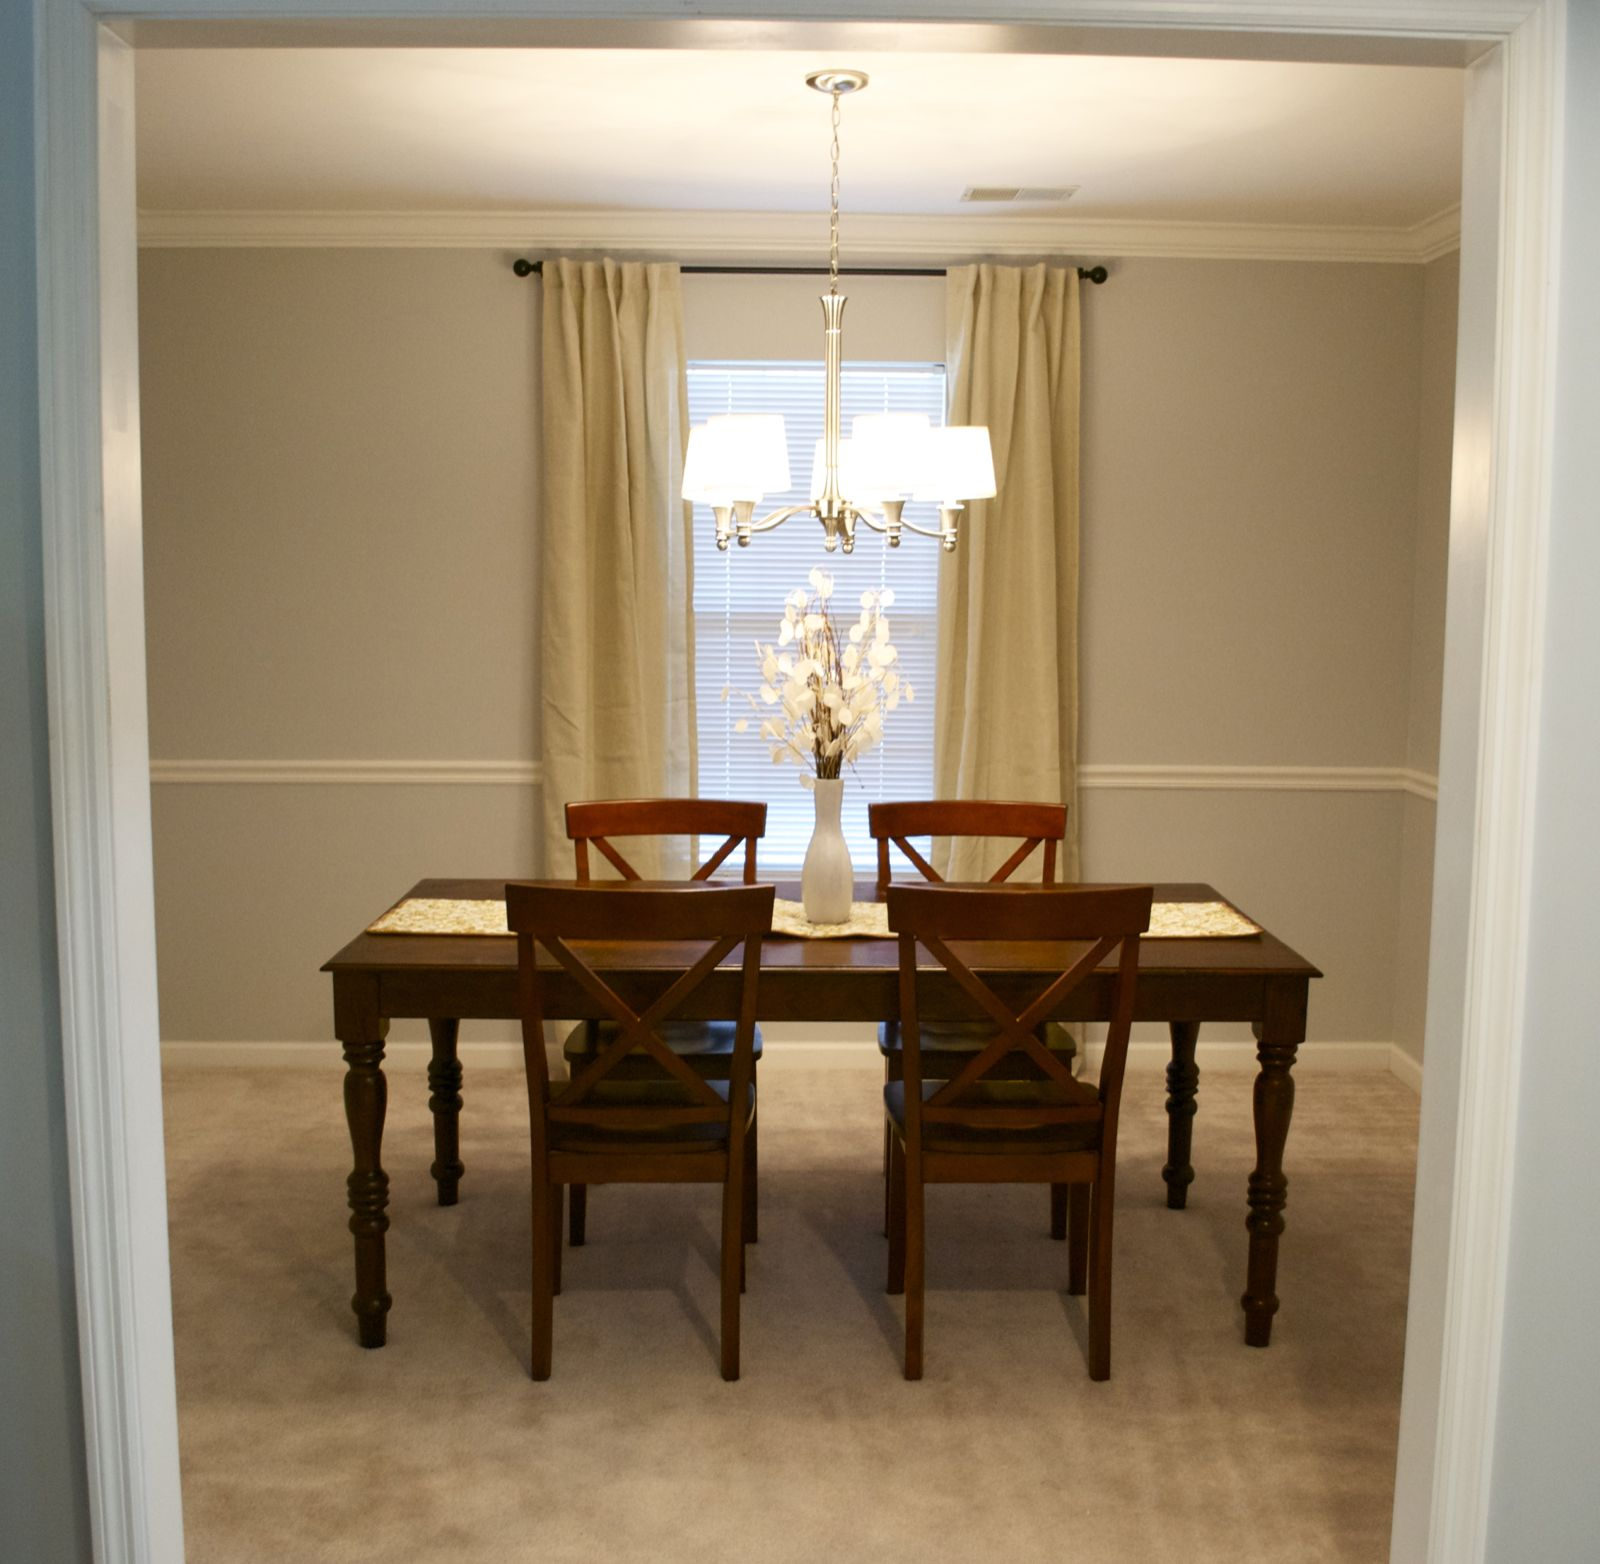 Dining Rooms Dream: Low Country Living: Dining Room Dream